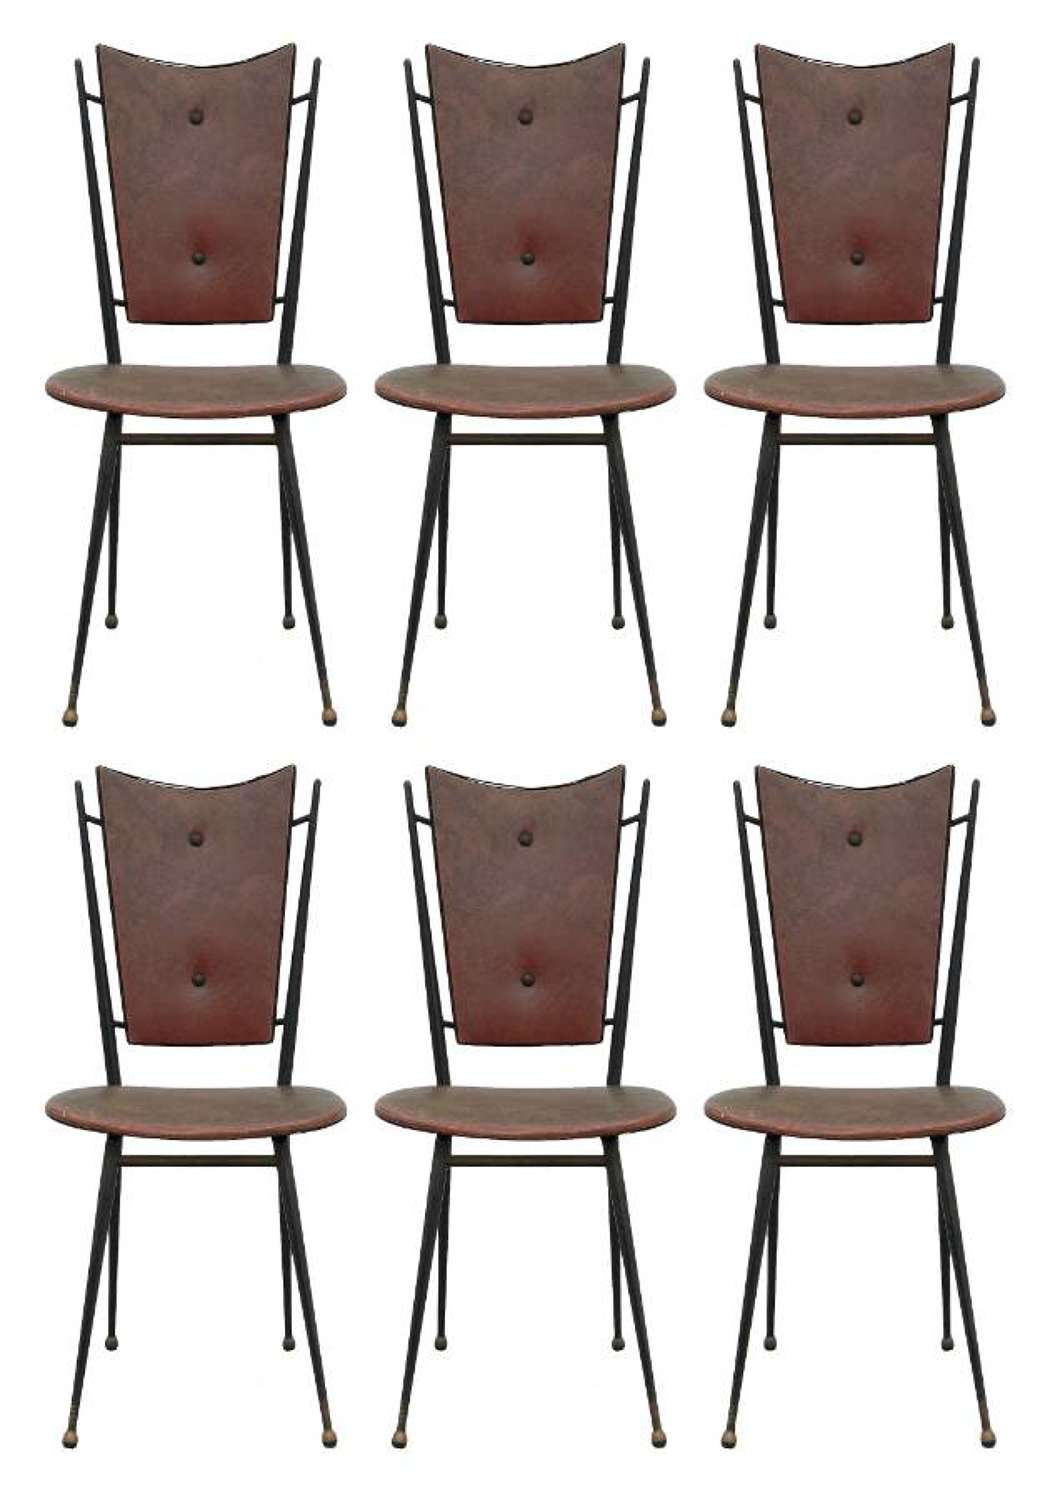 Six Midcentury Dining Chairs French to Restore Recover and Customize